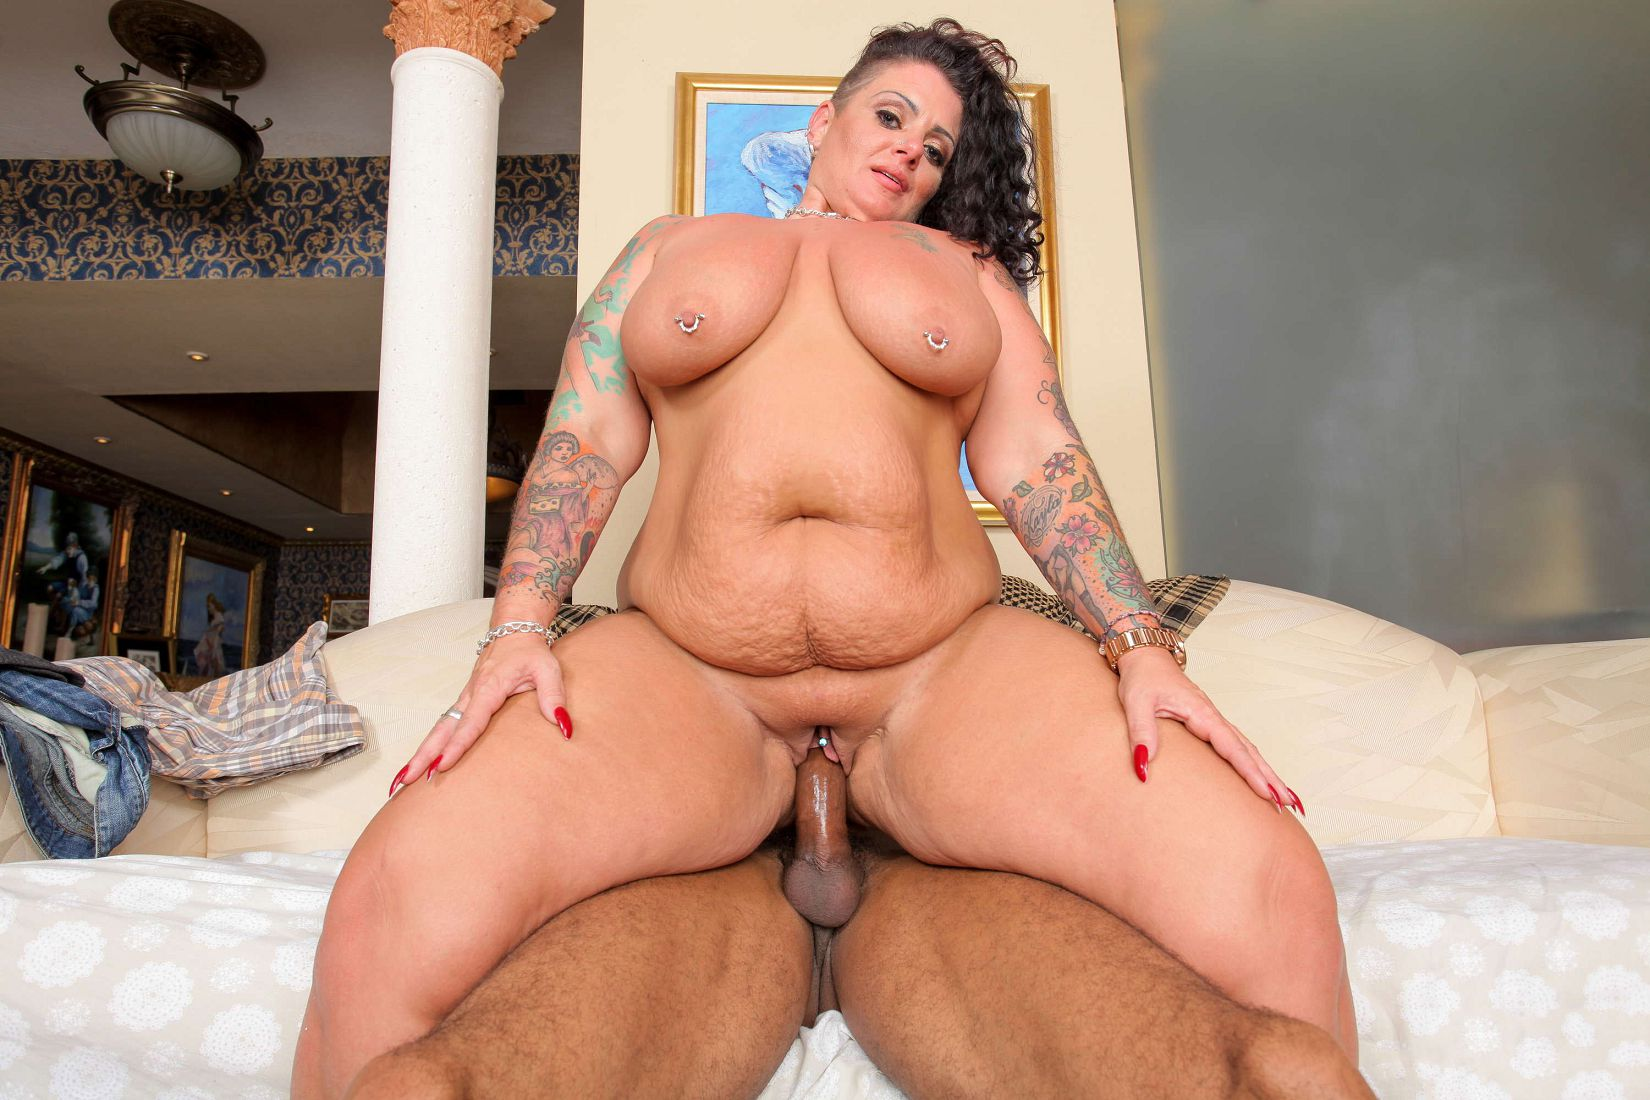 Big booty alt porn latina gina hawk smokes and sucks cocks - 1 3